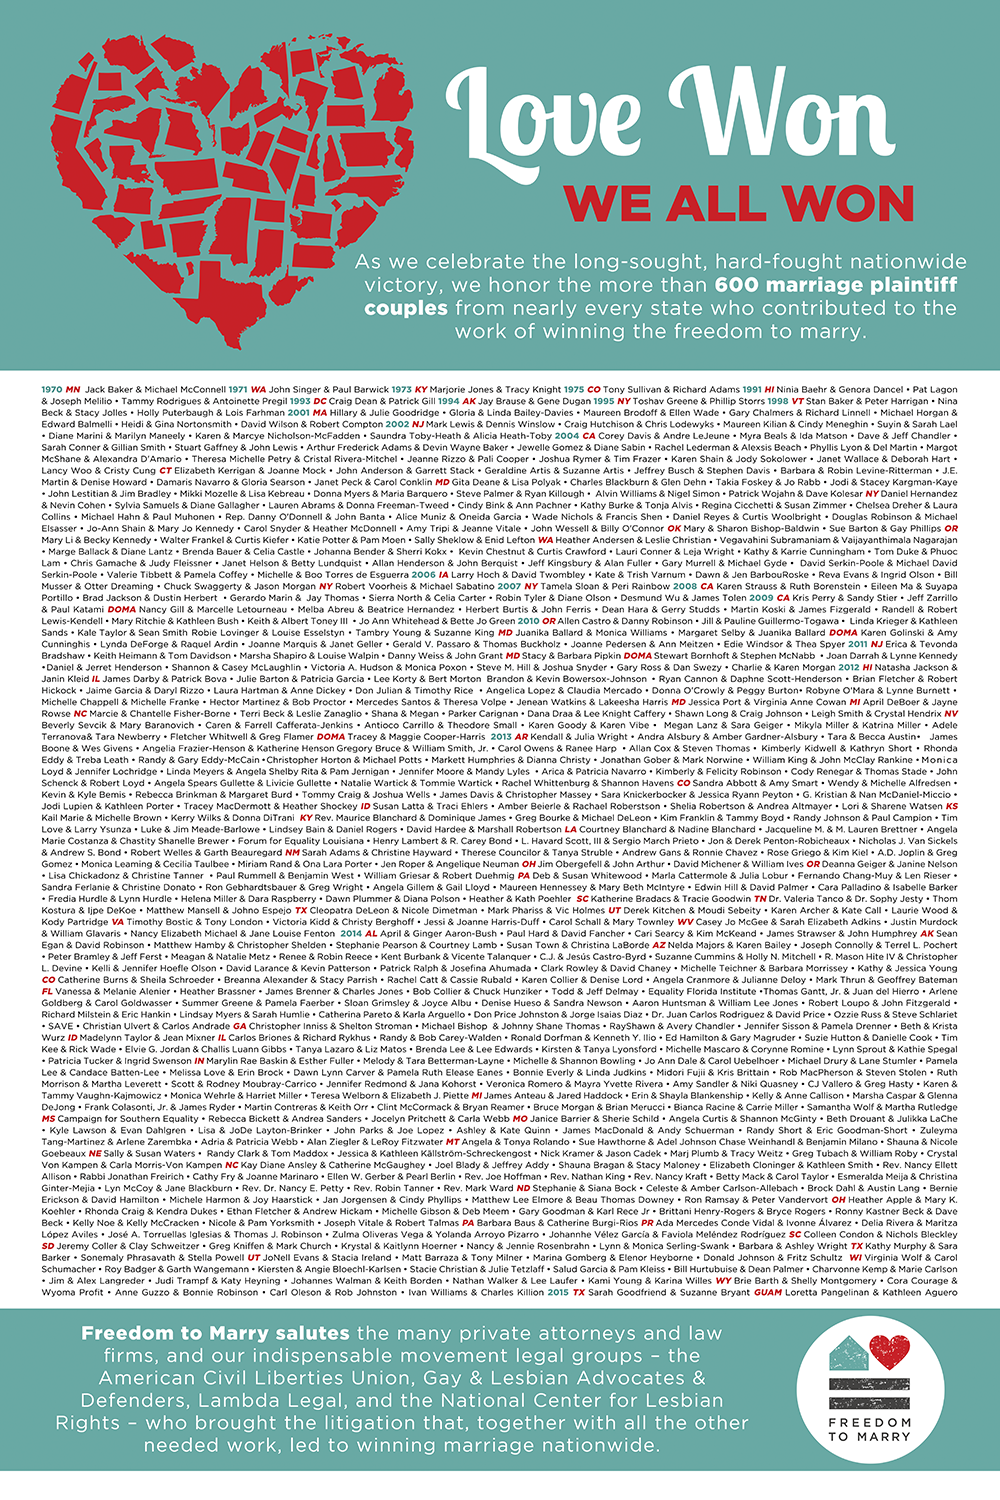 This poster, compiled by Freedom to Marry in 2015, displays all 500+ names of the same-sex couple who ever served as plaintiffs in a marriage case.